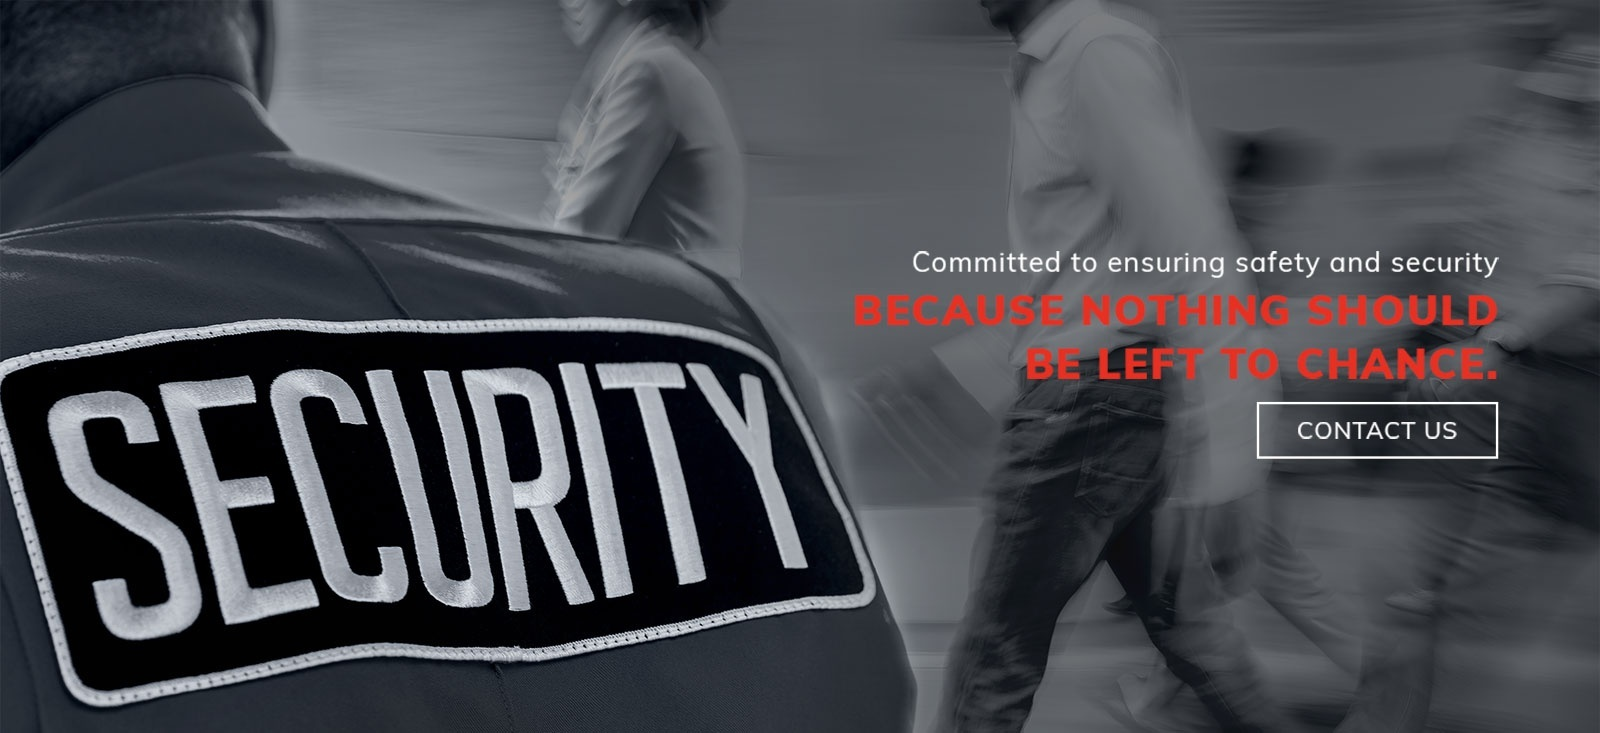 Committed to Ensuring Safety and Security - Toronto Protective Services by JTFSecurity Group